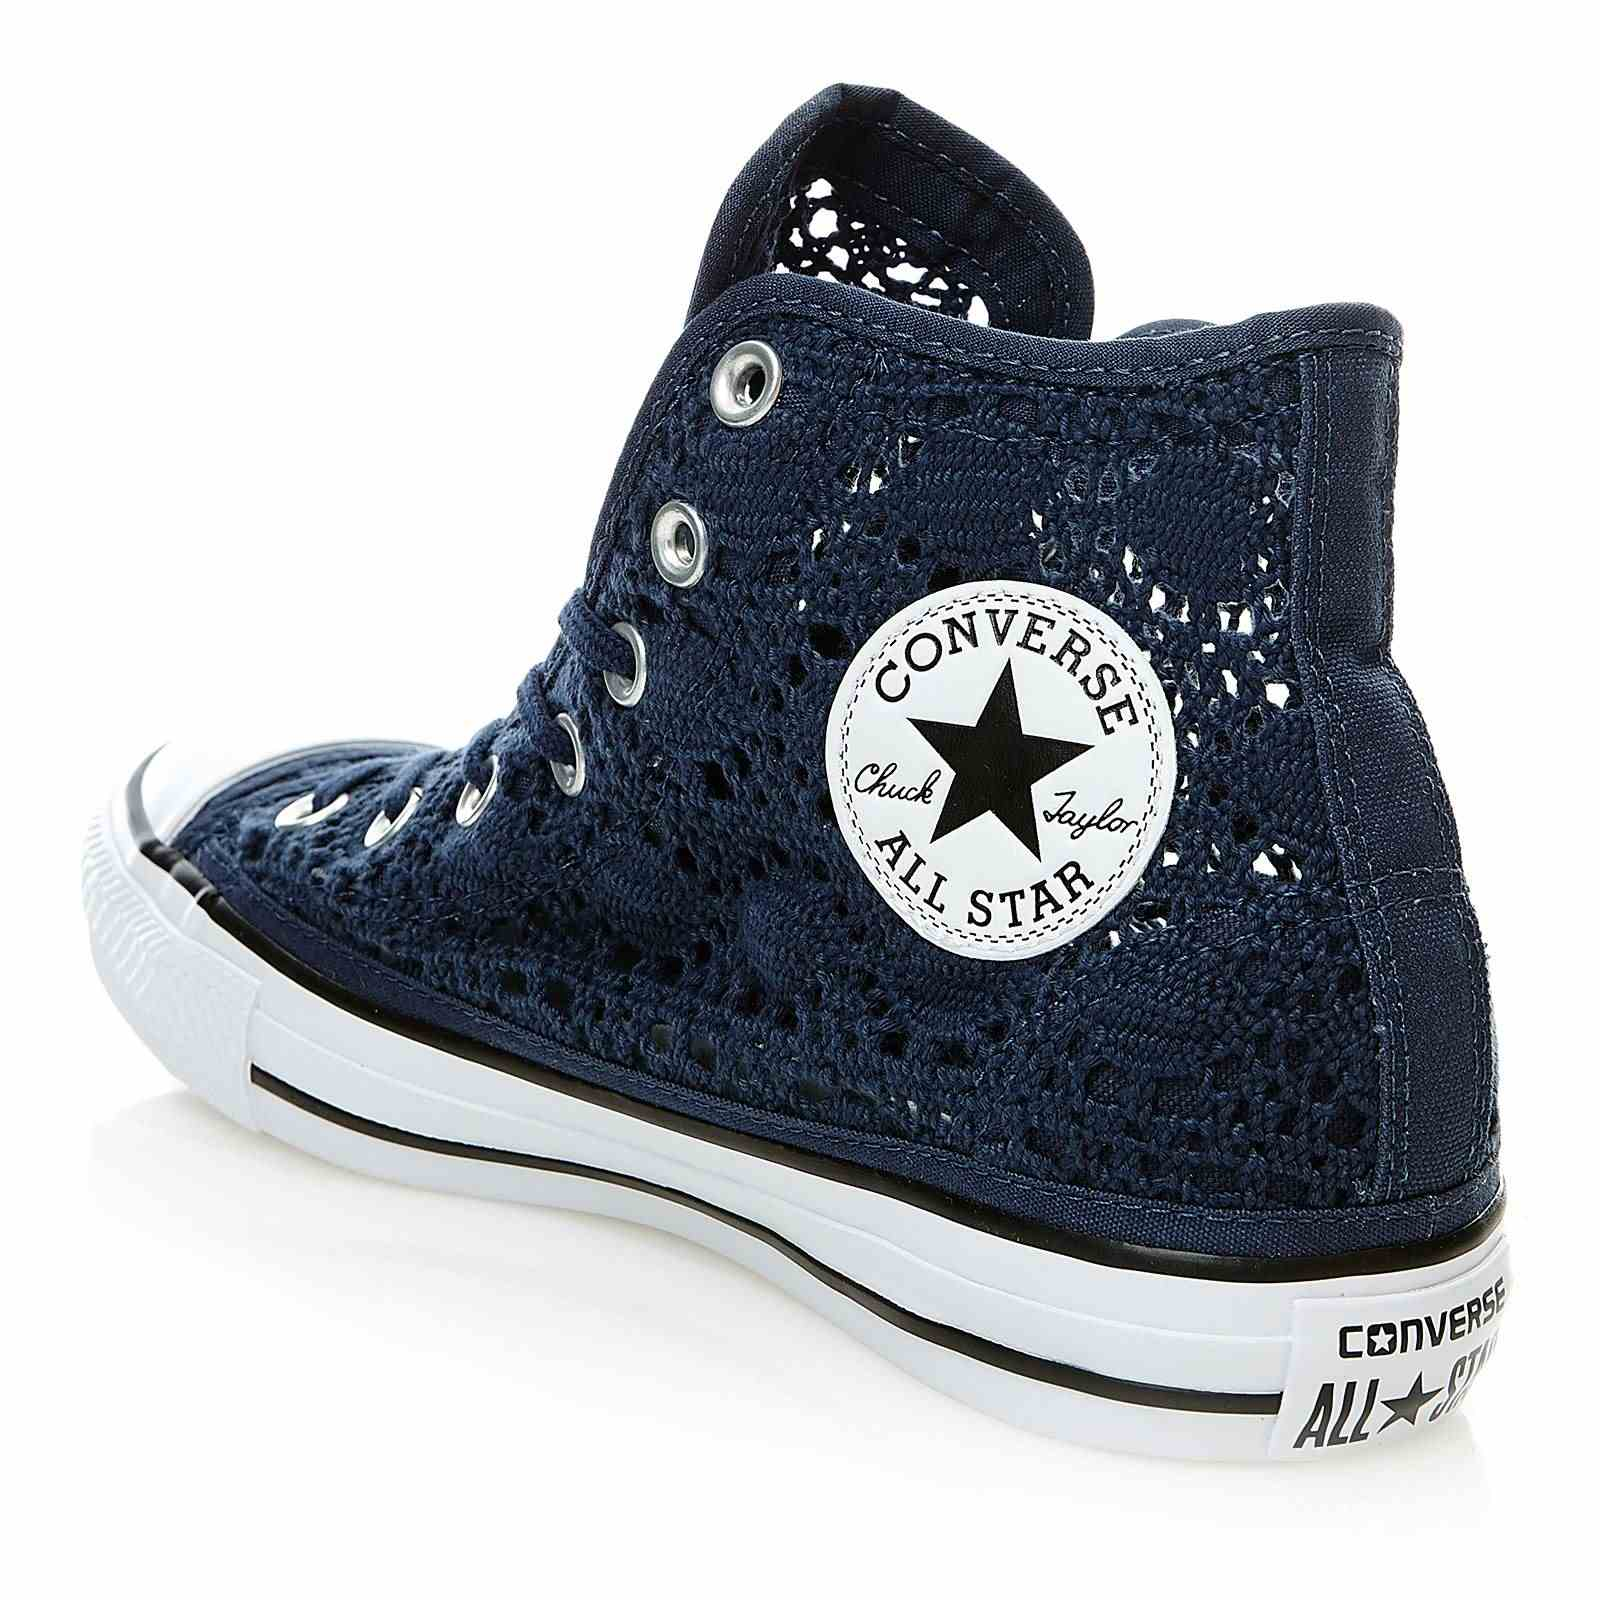 converse chuck taylor all star hi baskets montantes en crochet bleu marine brandalley. Black Bedroom Furniture Sets. Home Design Ideas